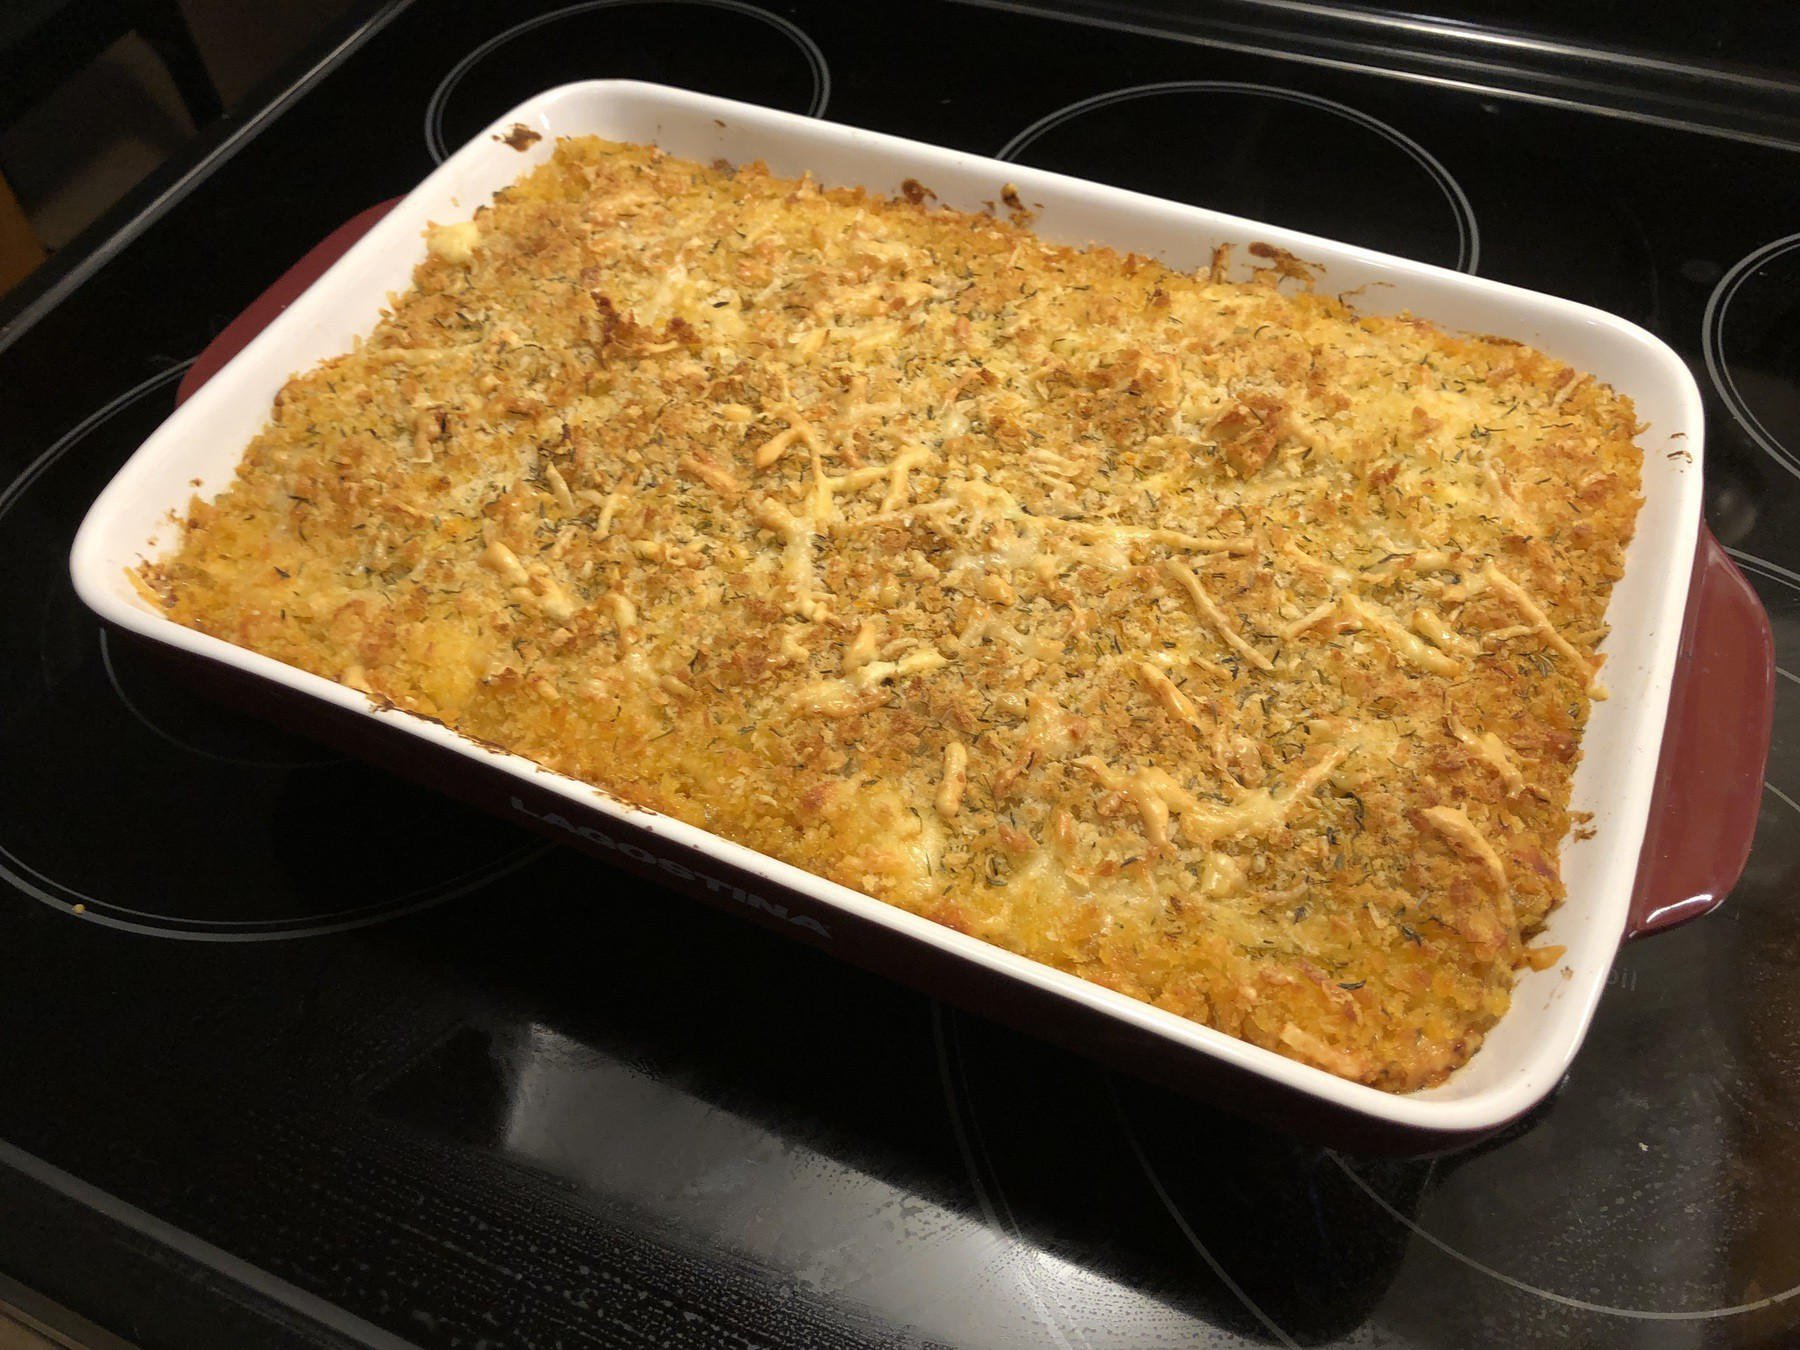 baked macaroni and cheese on stove